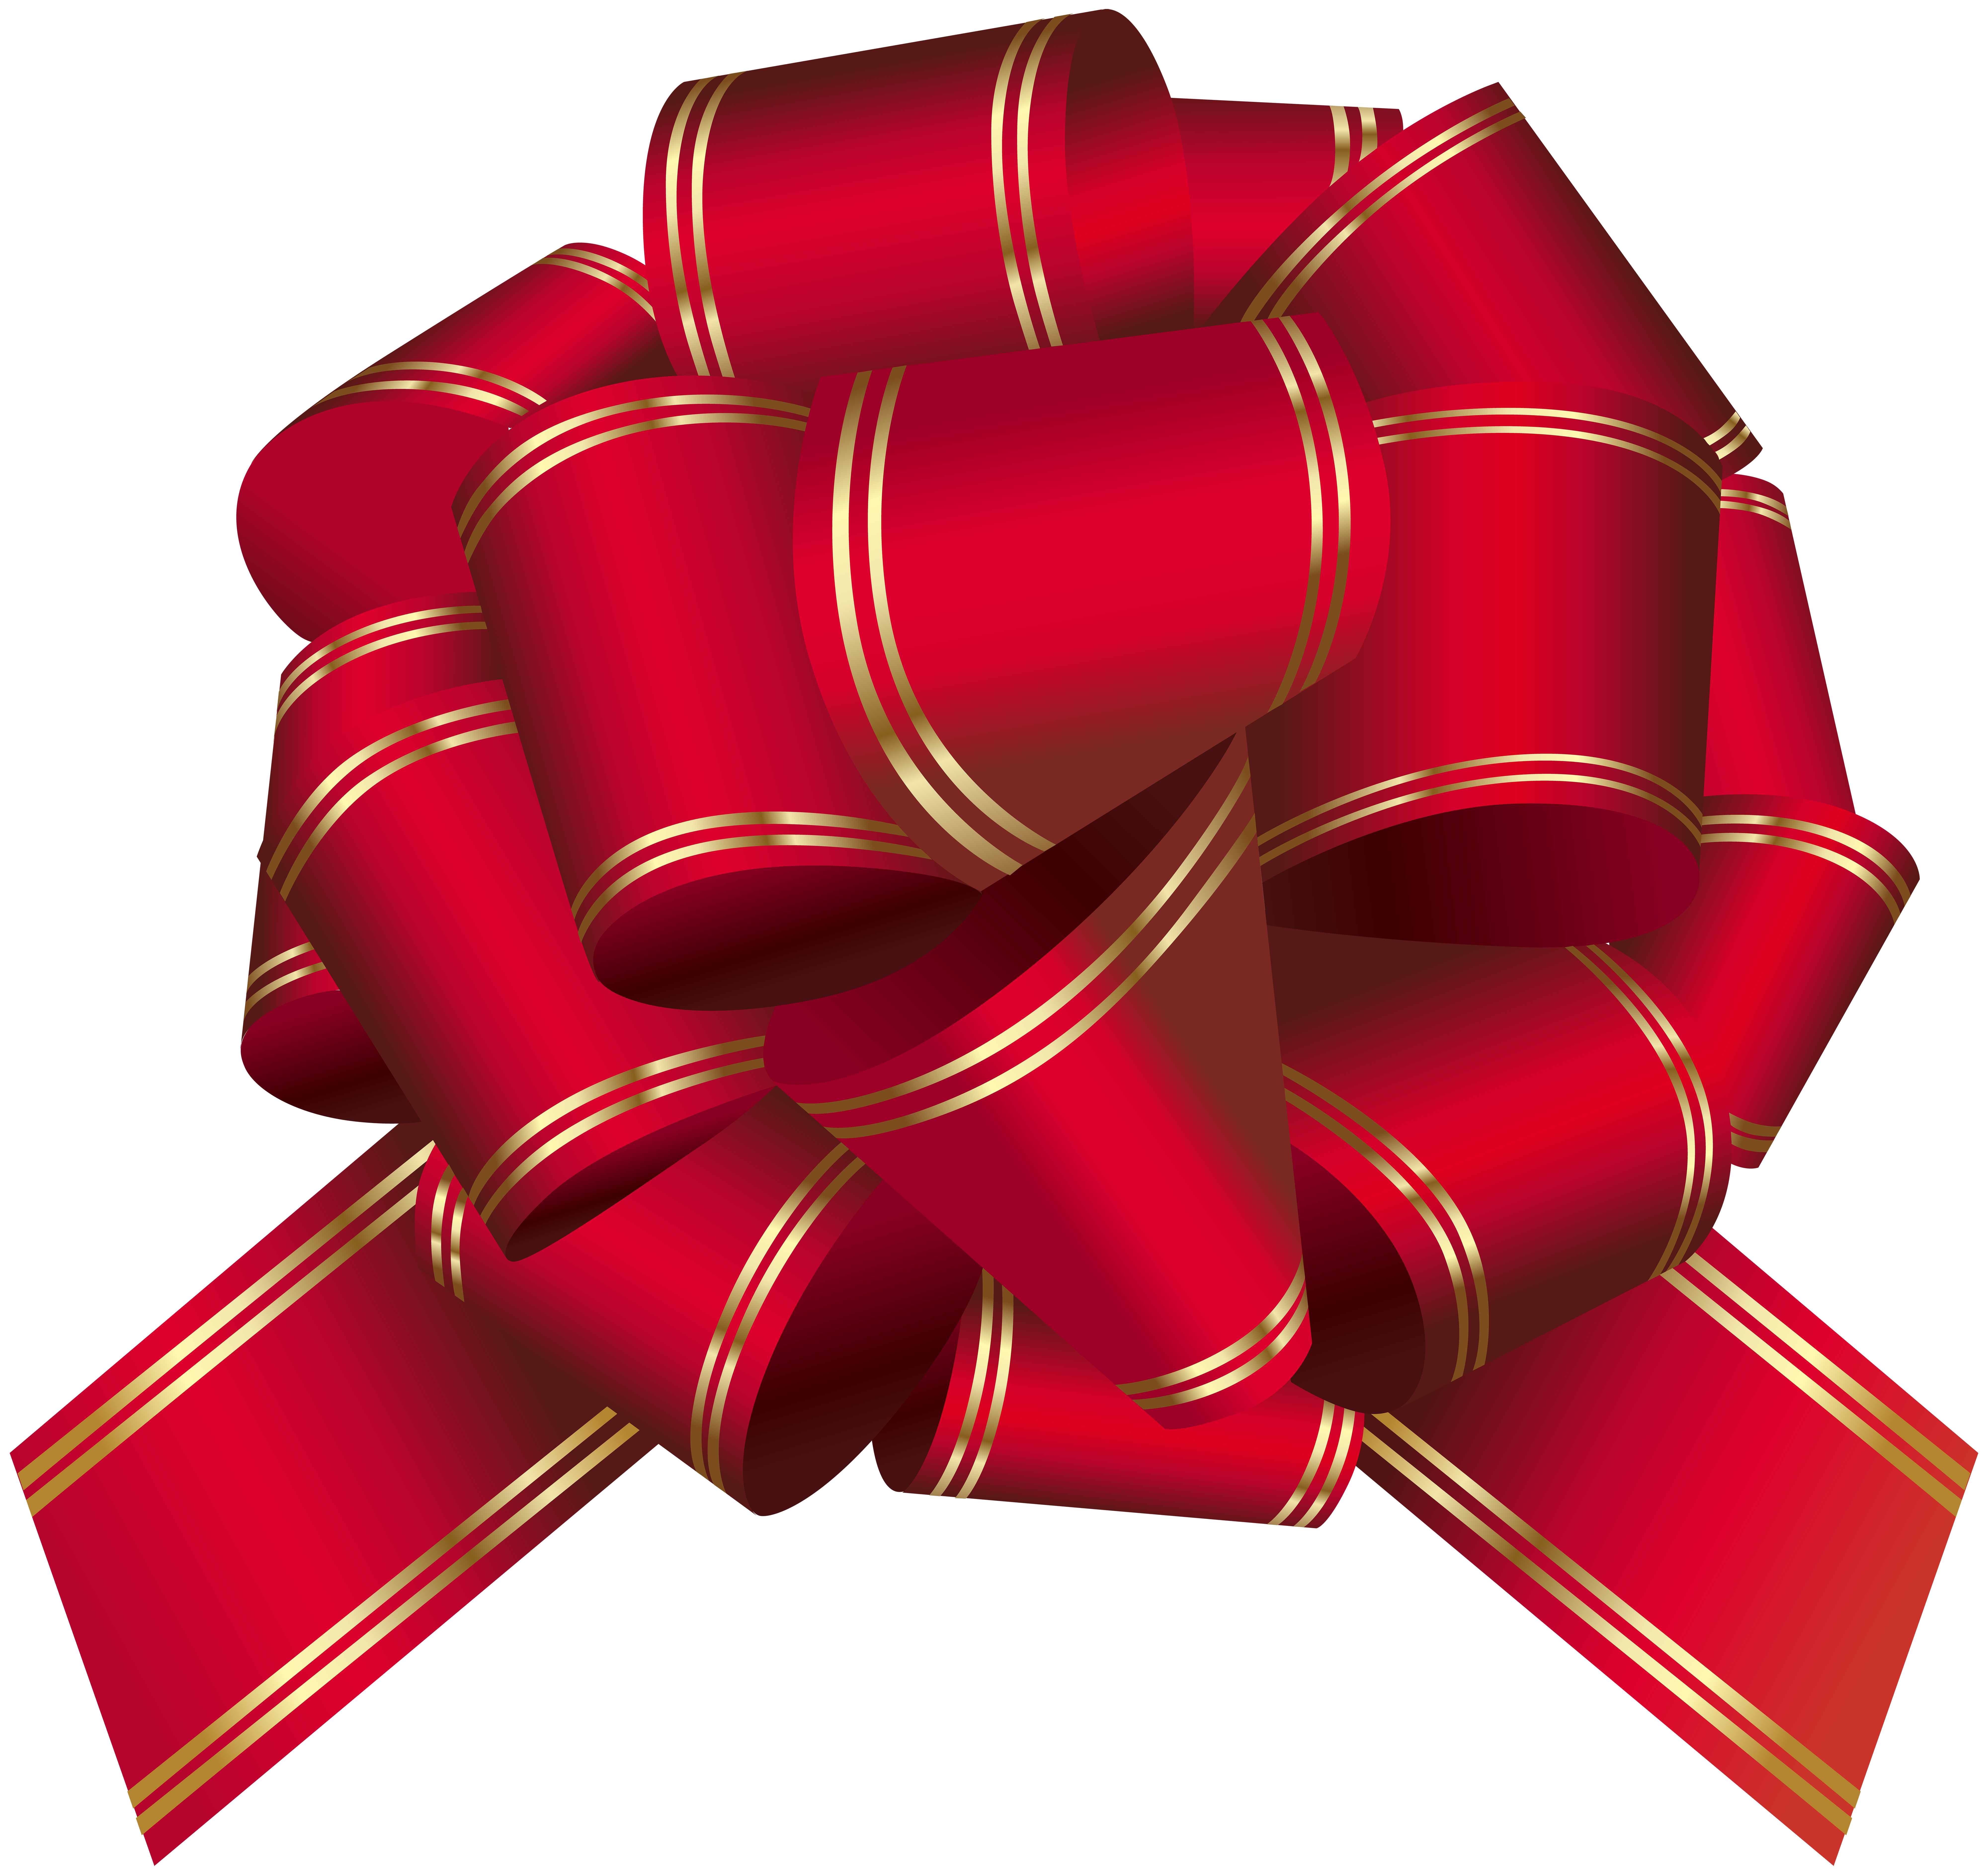 Red Bow Deco Transparent Clip Art Image Gallery Yopriceville High Quality Images And Transparent Png Free Clipart Clip Art Christmas Graphics Bows